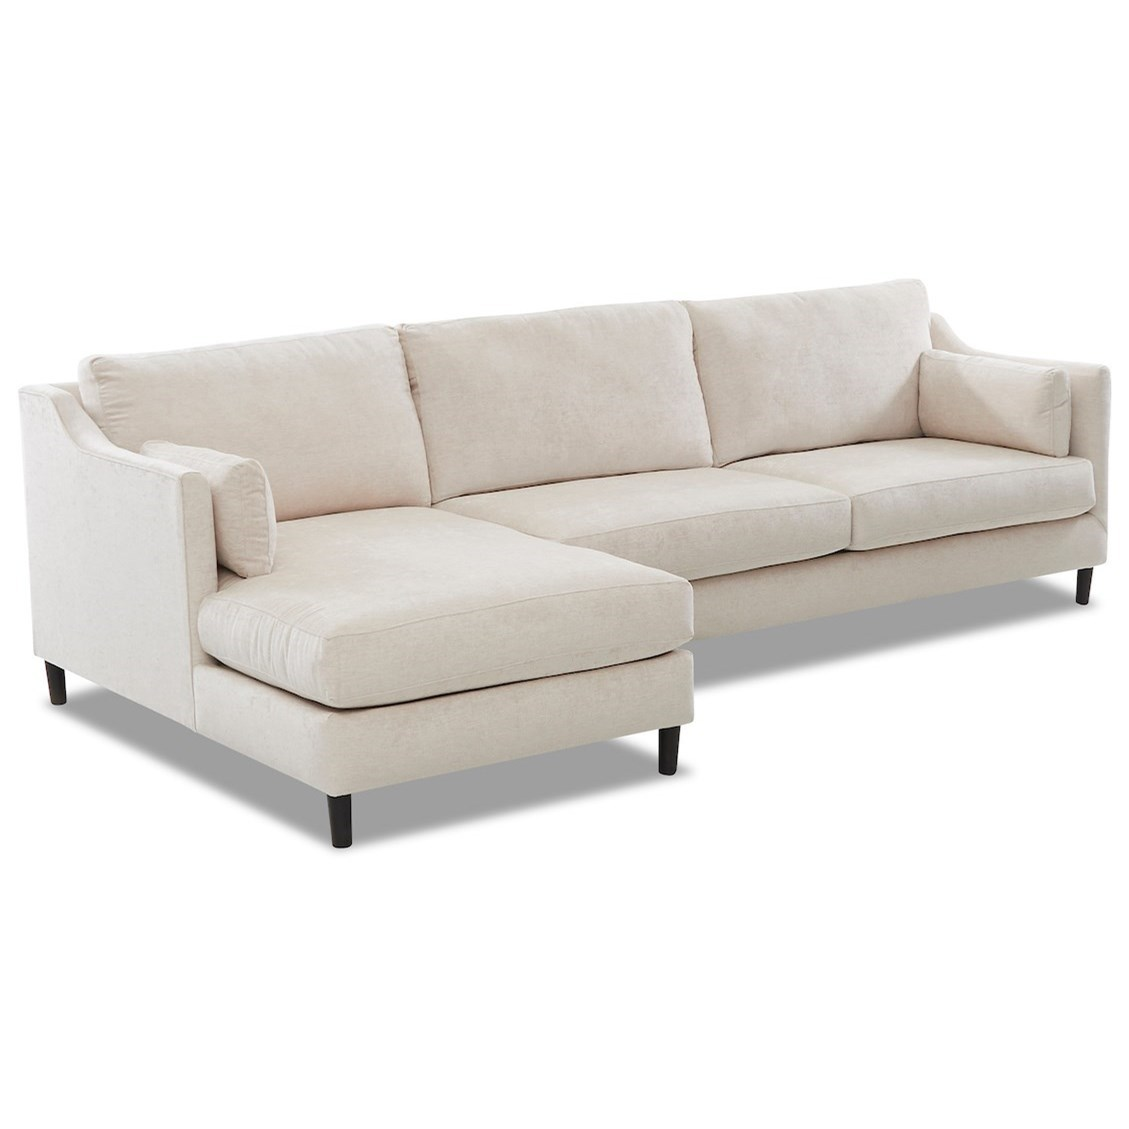 Harlow 3-Seat Modular Chaise Sofa w/ LAF Chaise by Klaussner at Northeast Factory Direct